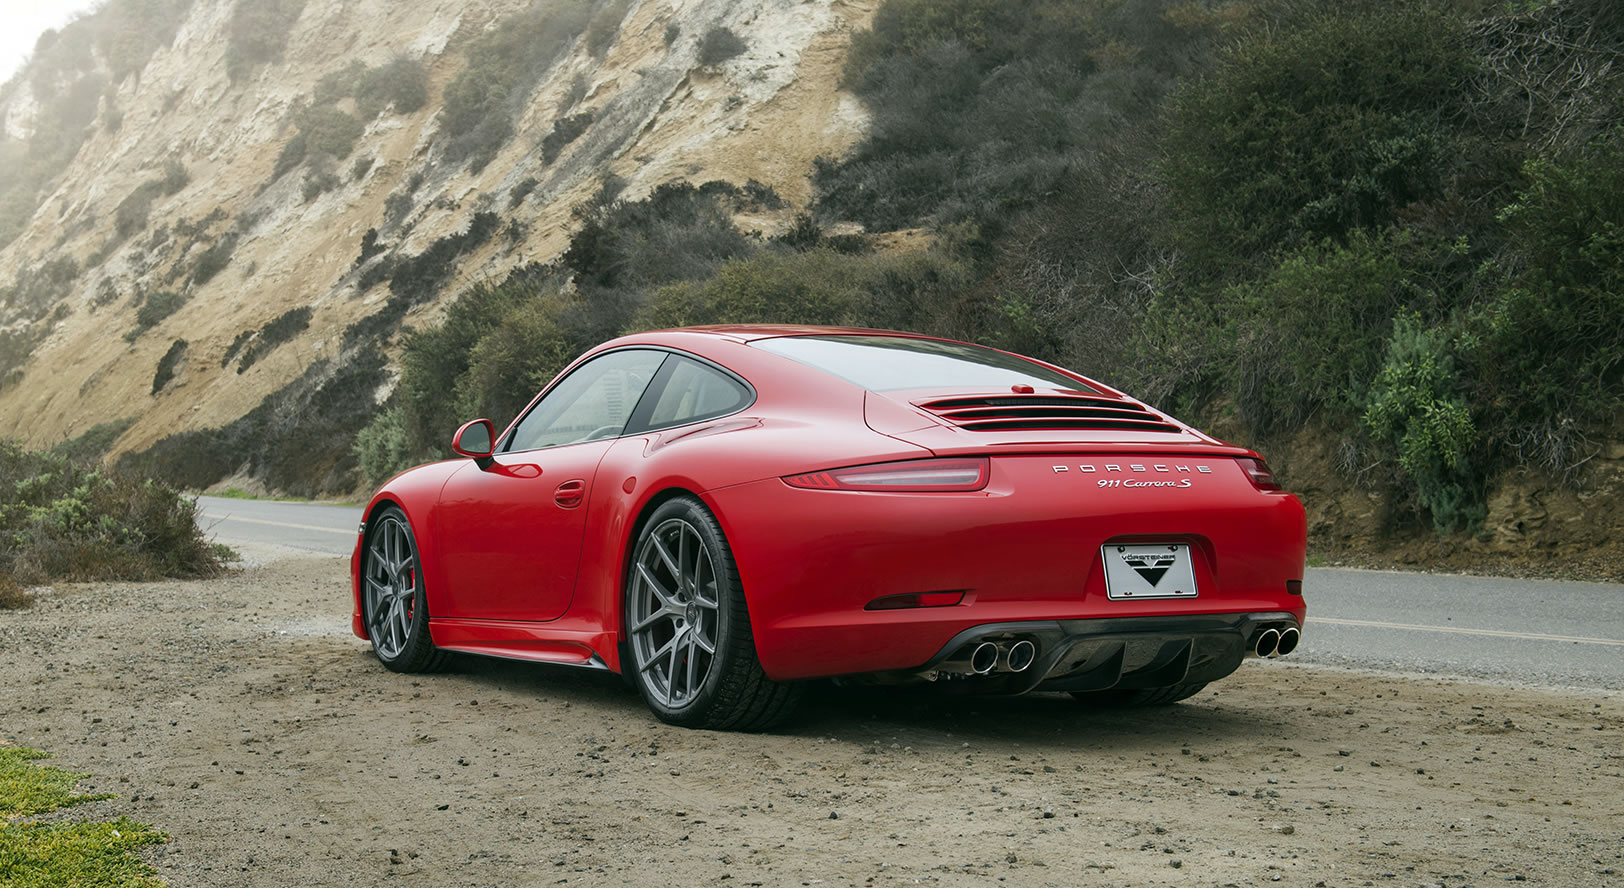 2014 porsche 911 carrera s v gt by vorsteiner photos specs and review rs. Black Bedroom Furniture Sets. Home Design Ideas